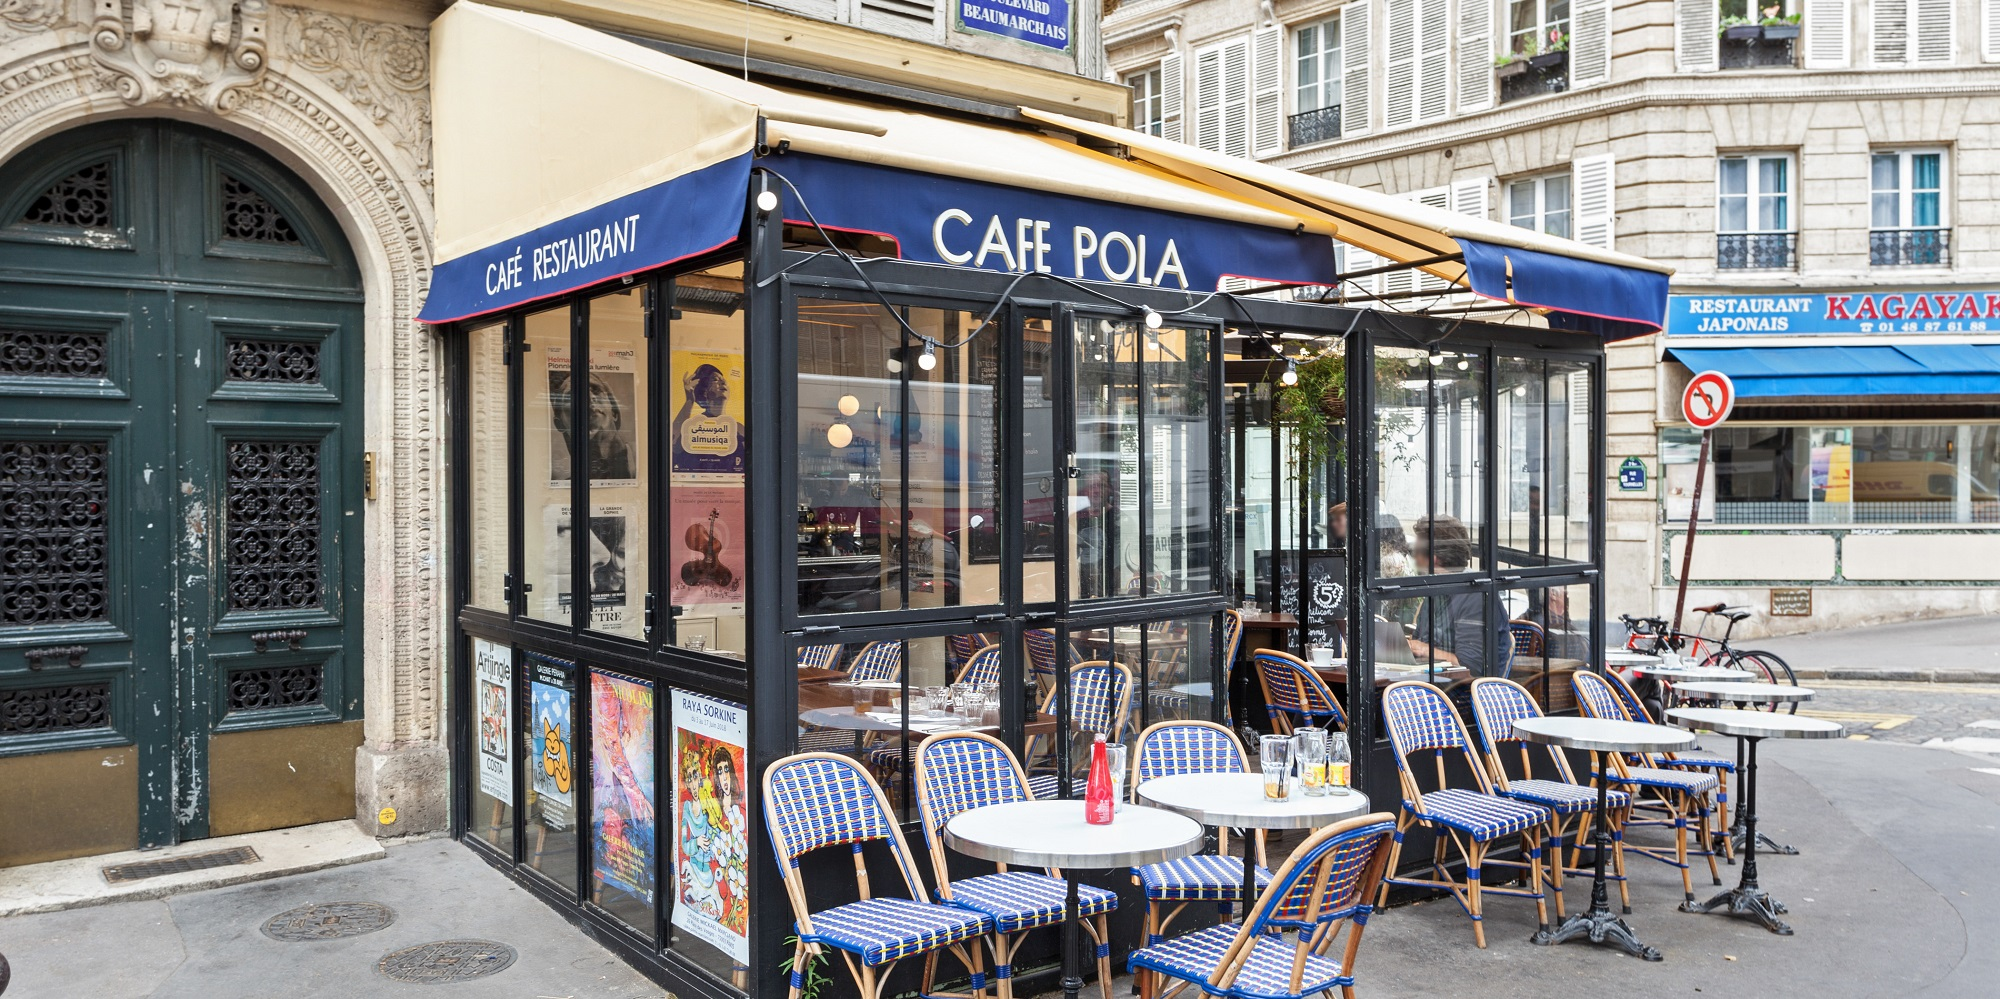 Brunch Café Pola (75003 Paris)